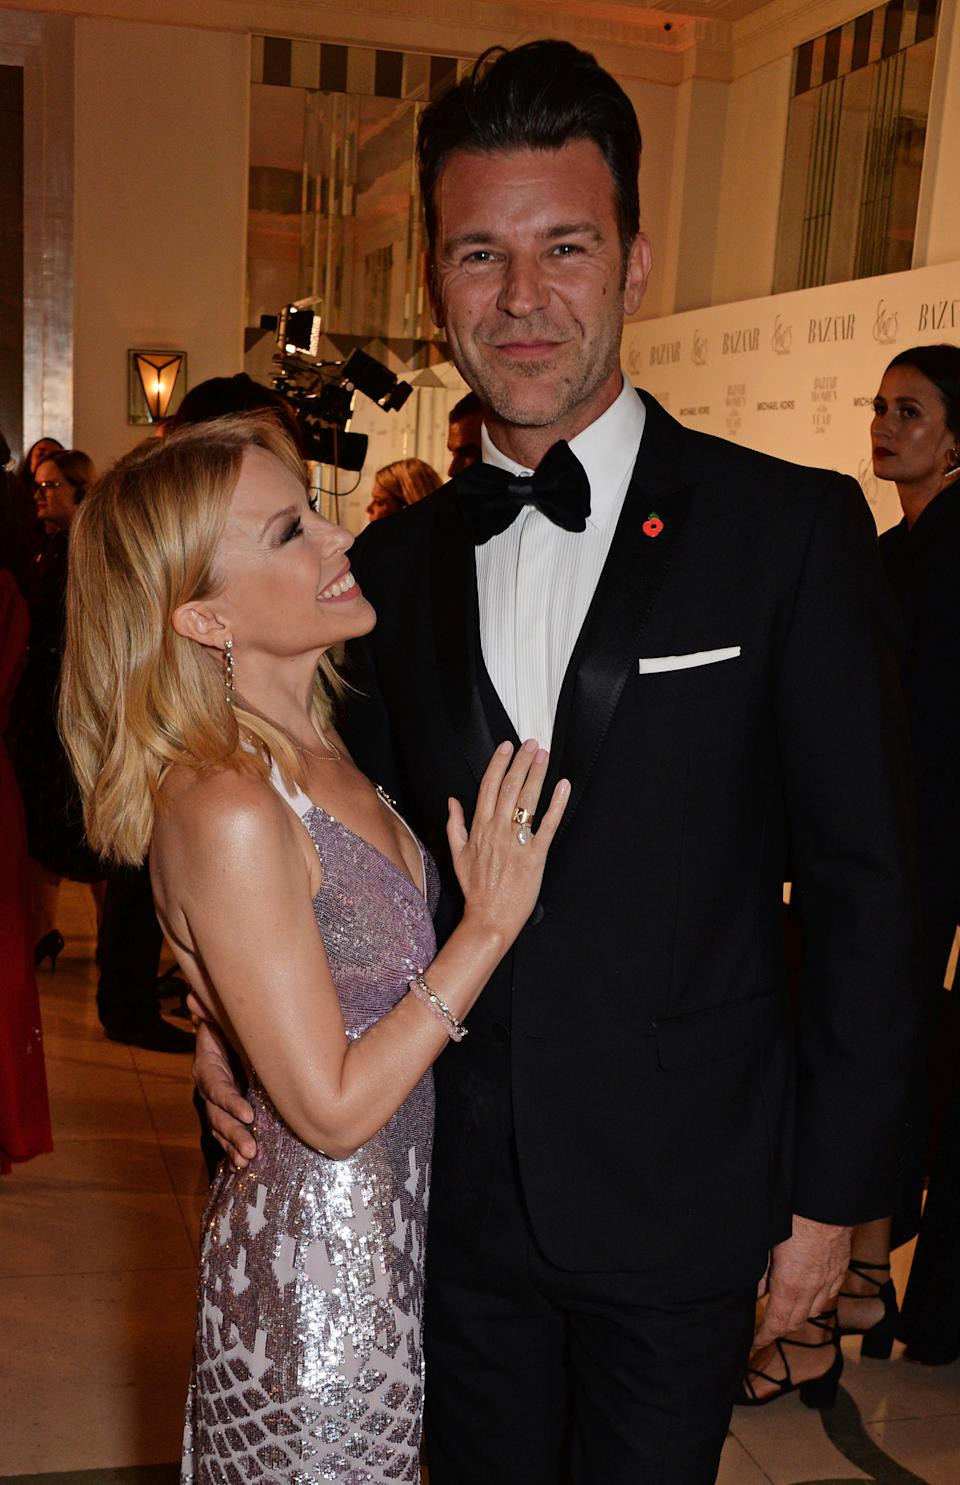 Kylie Minogue and Paul Solomons attend the Harper's Bazaar Women Of The Year Awards 2018 at Claridge's Hotel on October 30, 2018 in London, England